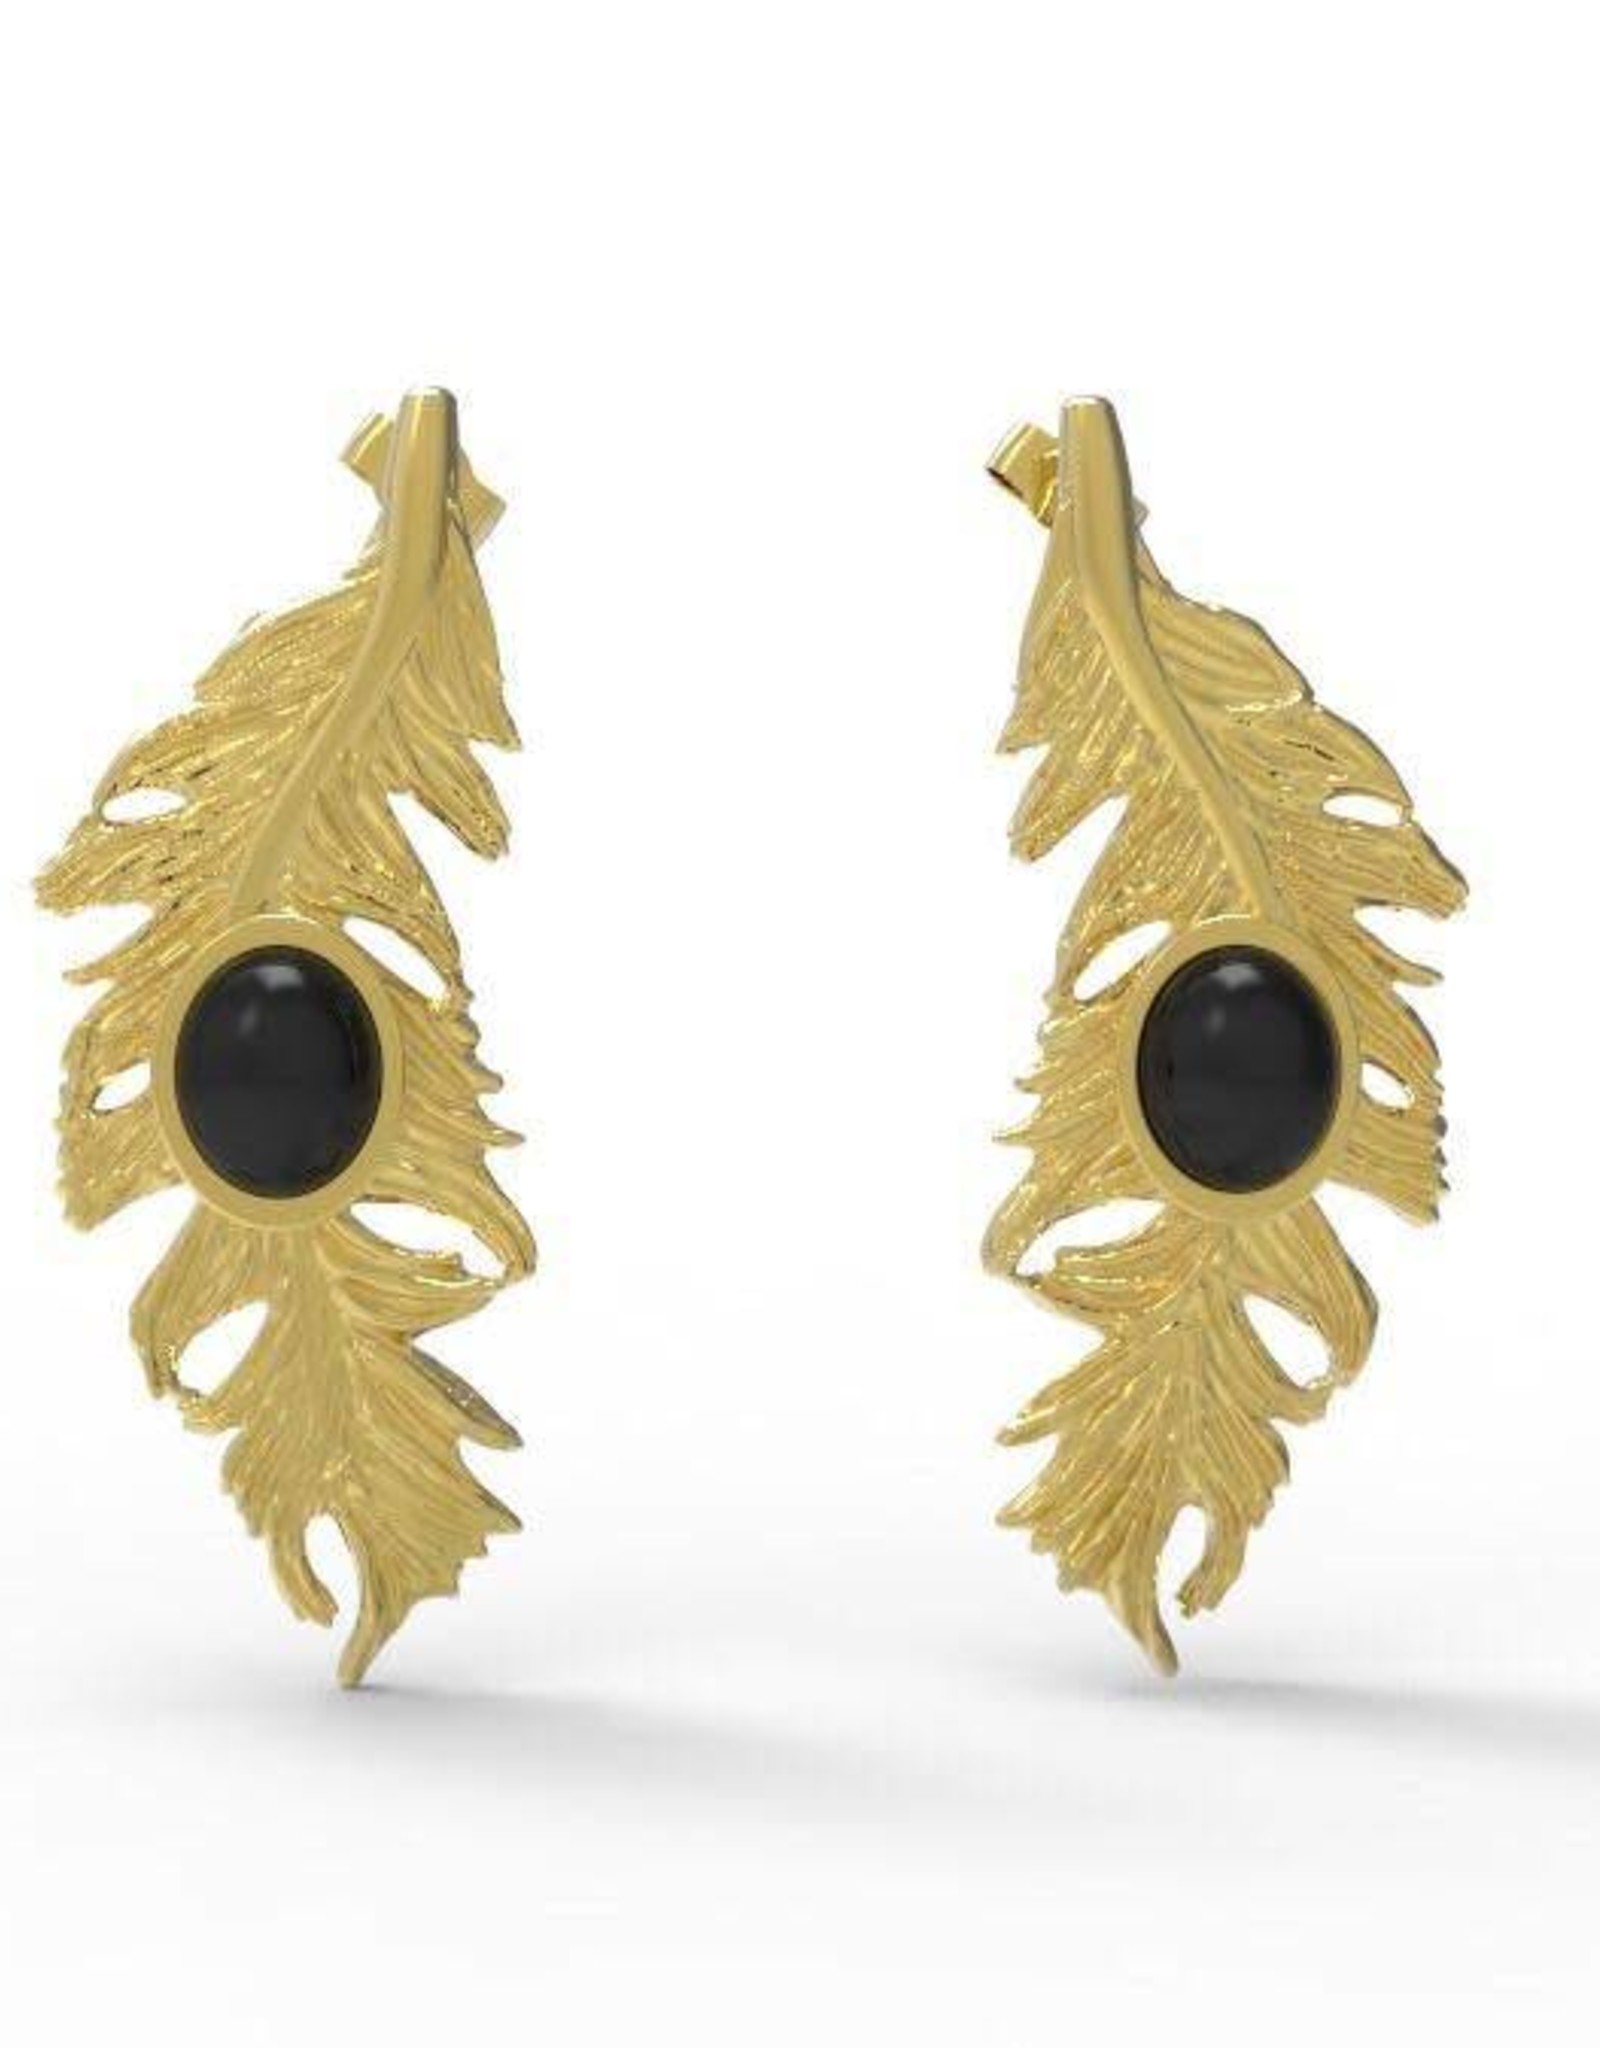 AVORIGEN ARETES FEATHER NEGRO, AVORIGEN